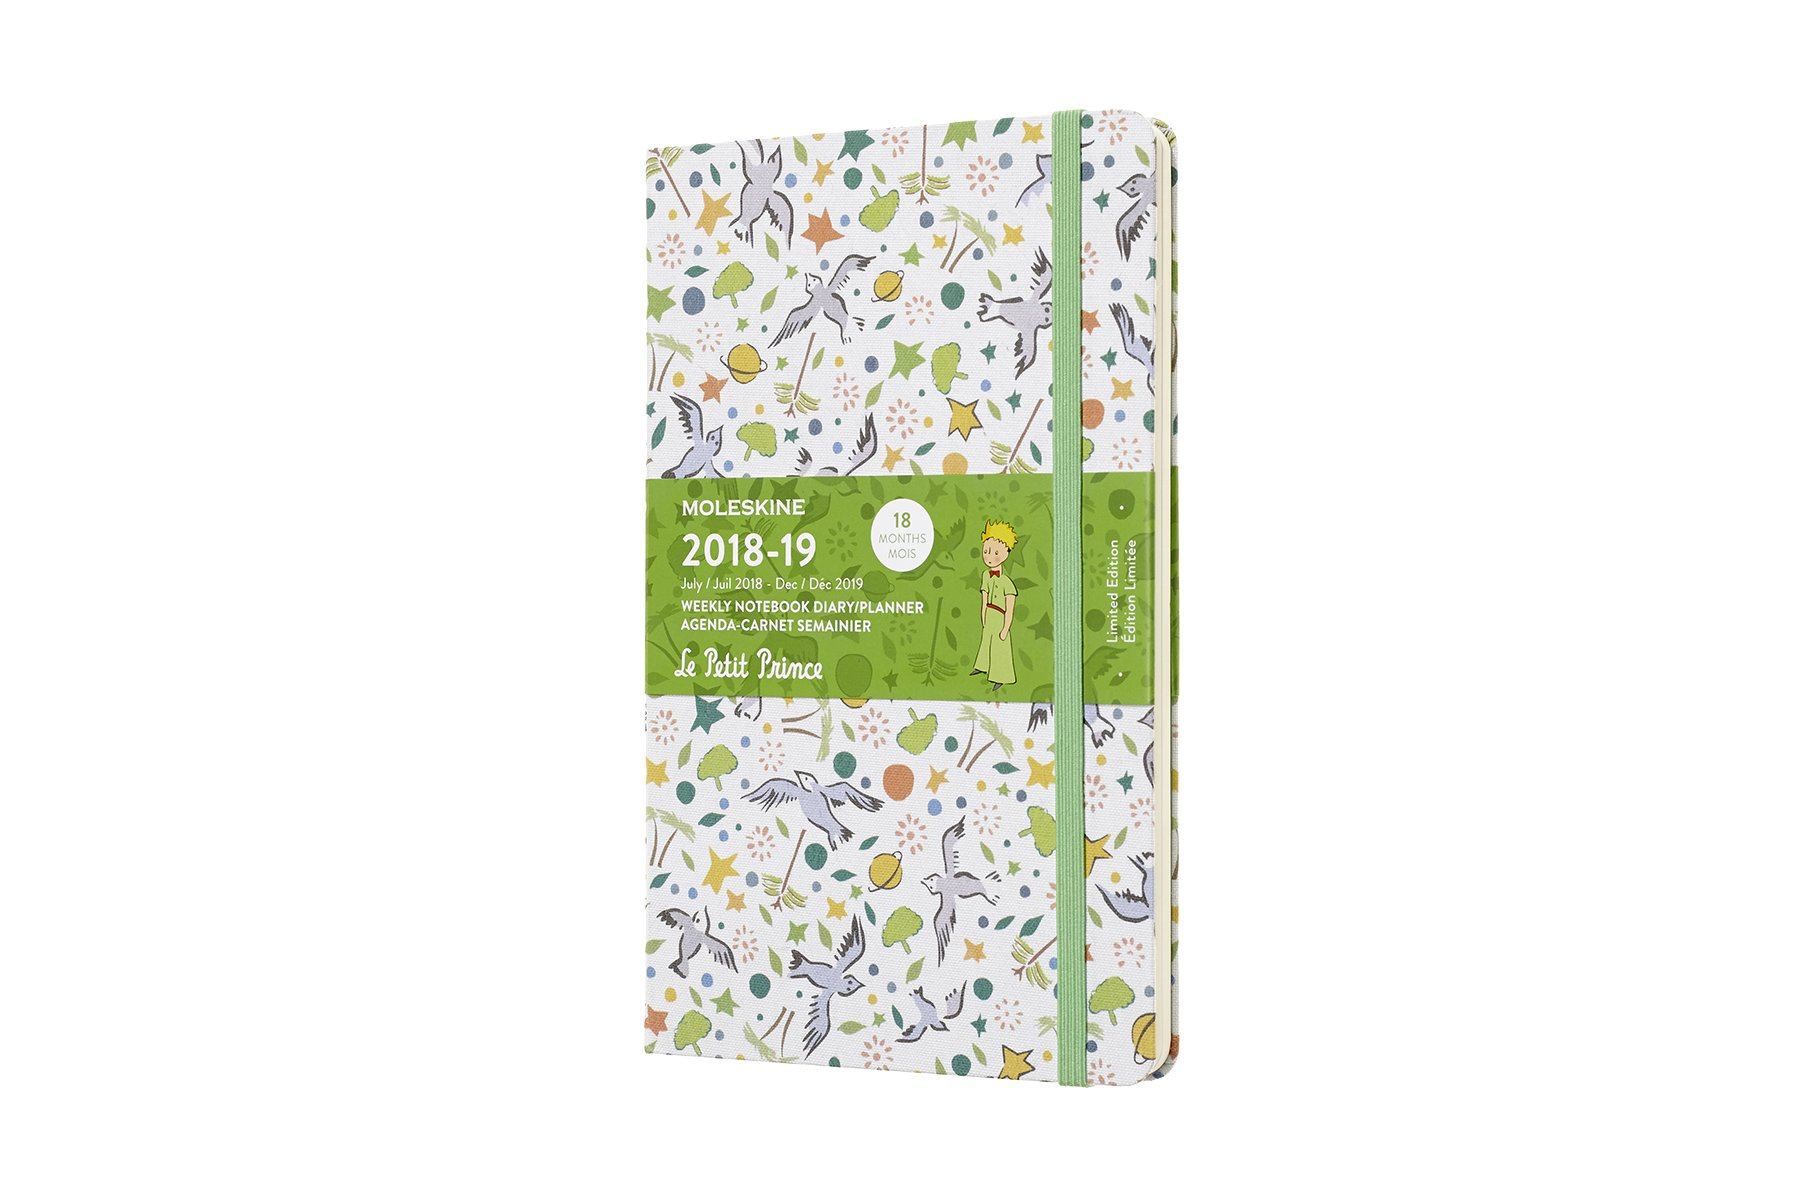 Moleskine 2018-2019 18m Limited Edition Petit Prince Large.